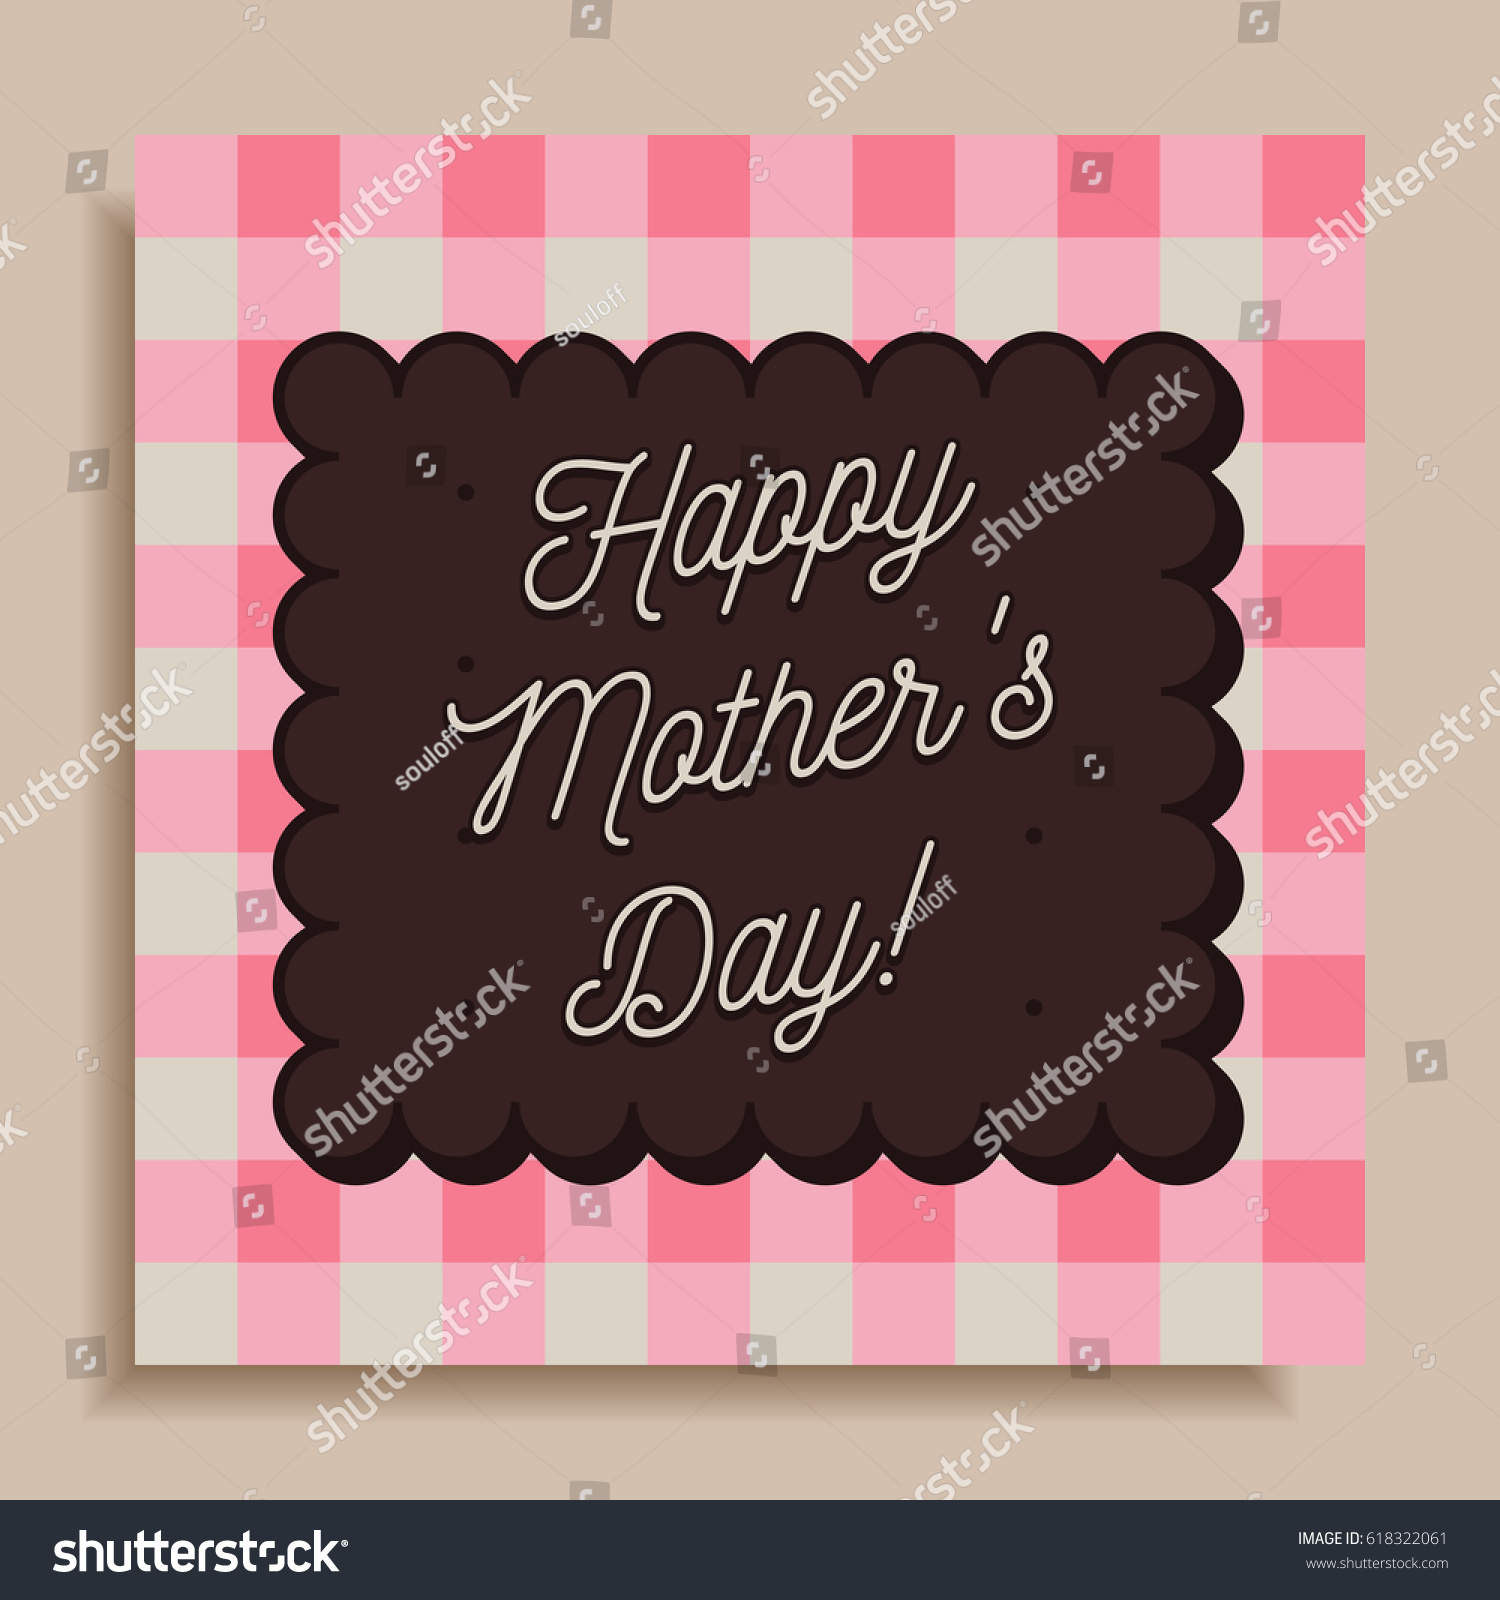 Creative Happy Mothers Day Greeting Cardposter Stock Vector Royalty